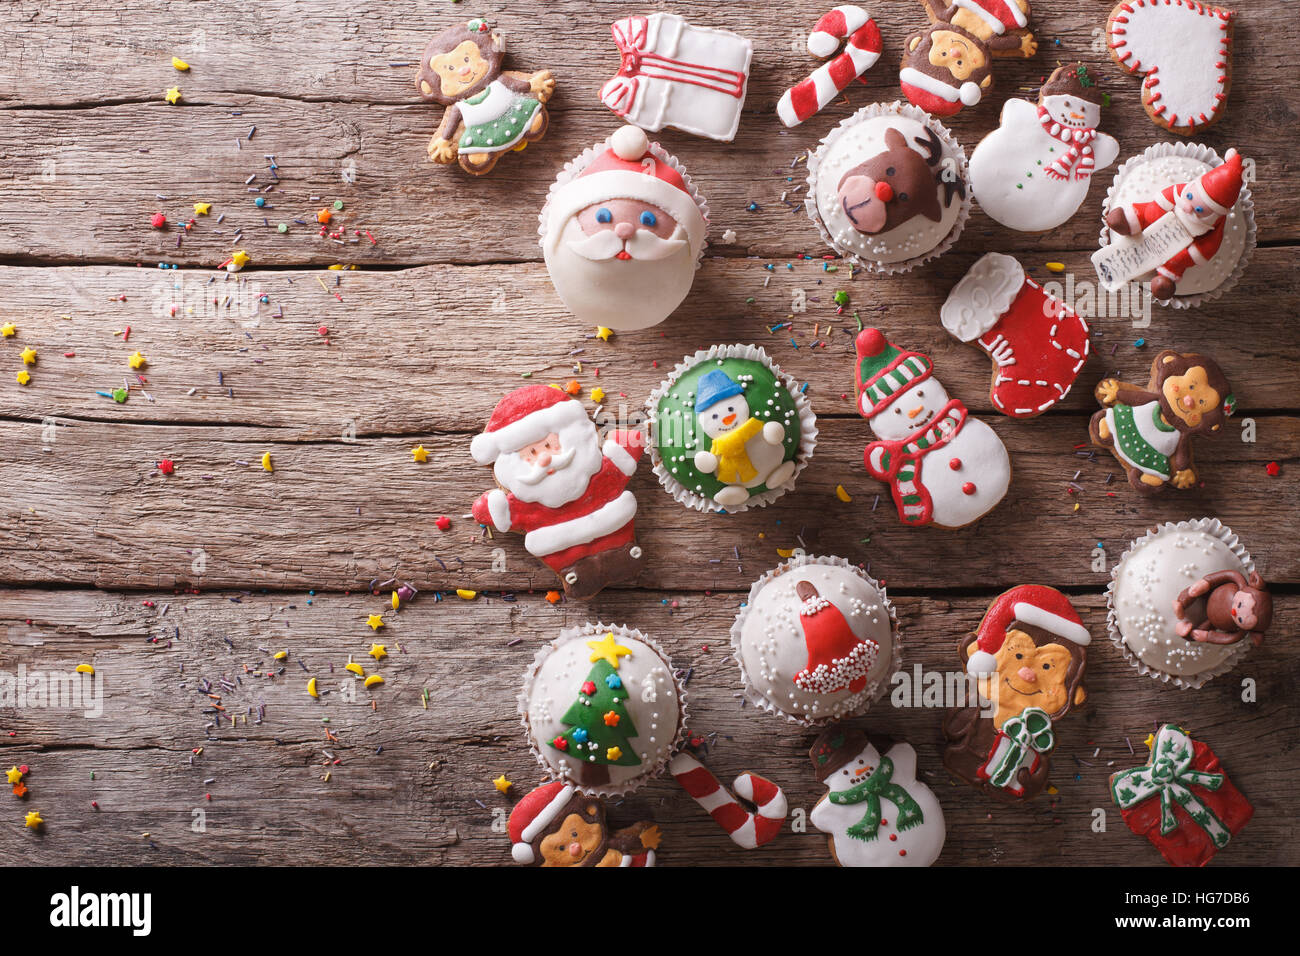 Background of Christmas sweets on a wooden table. horizontal view from above - Stock Image